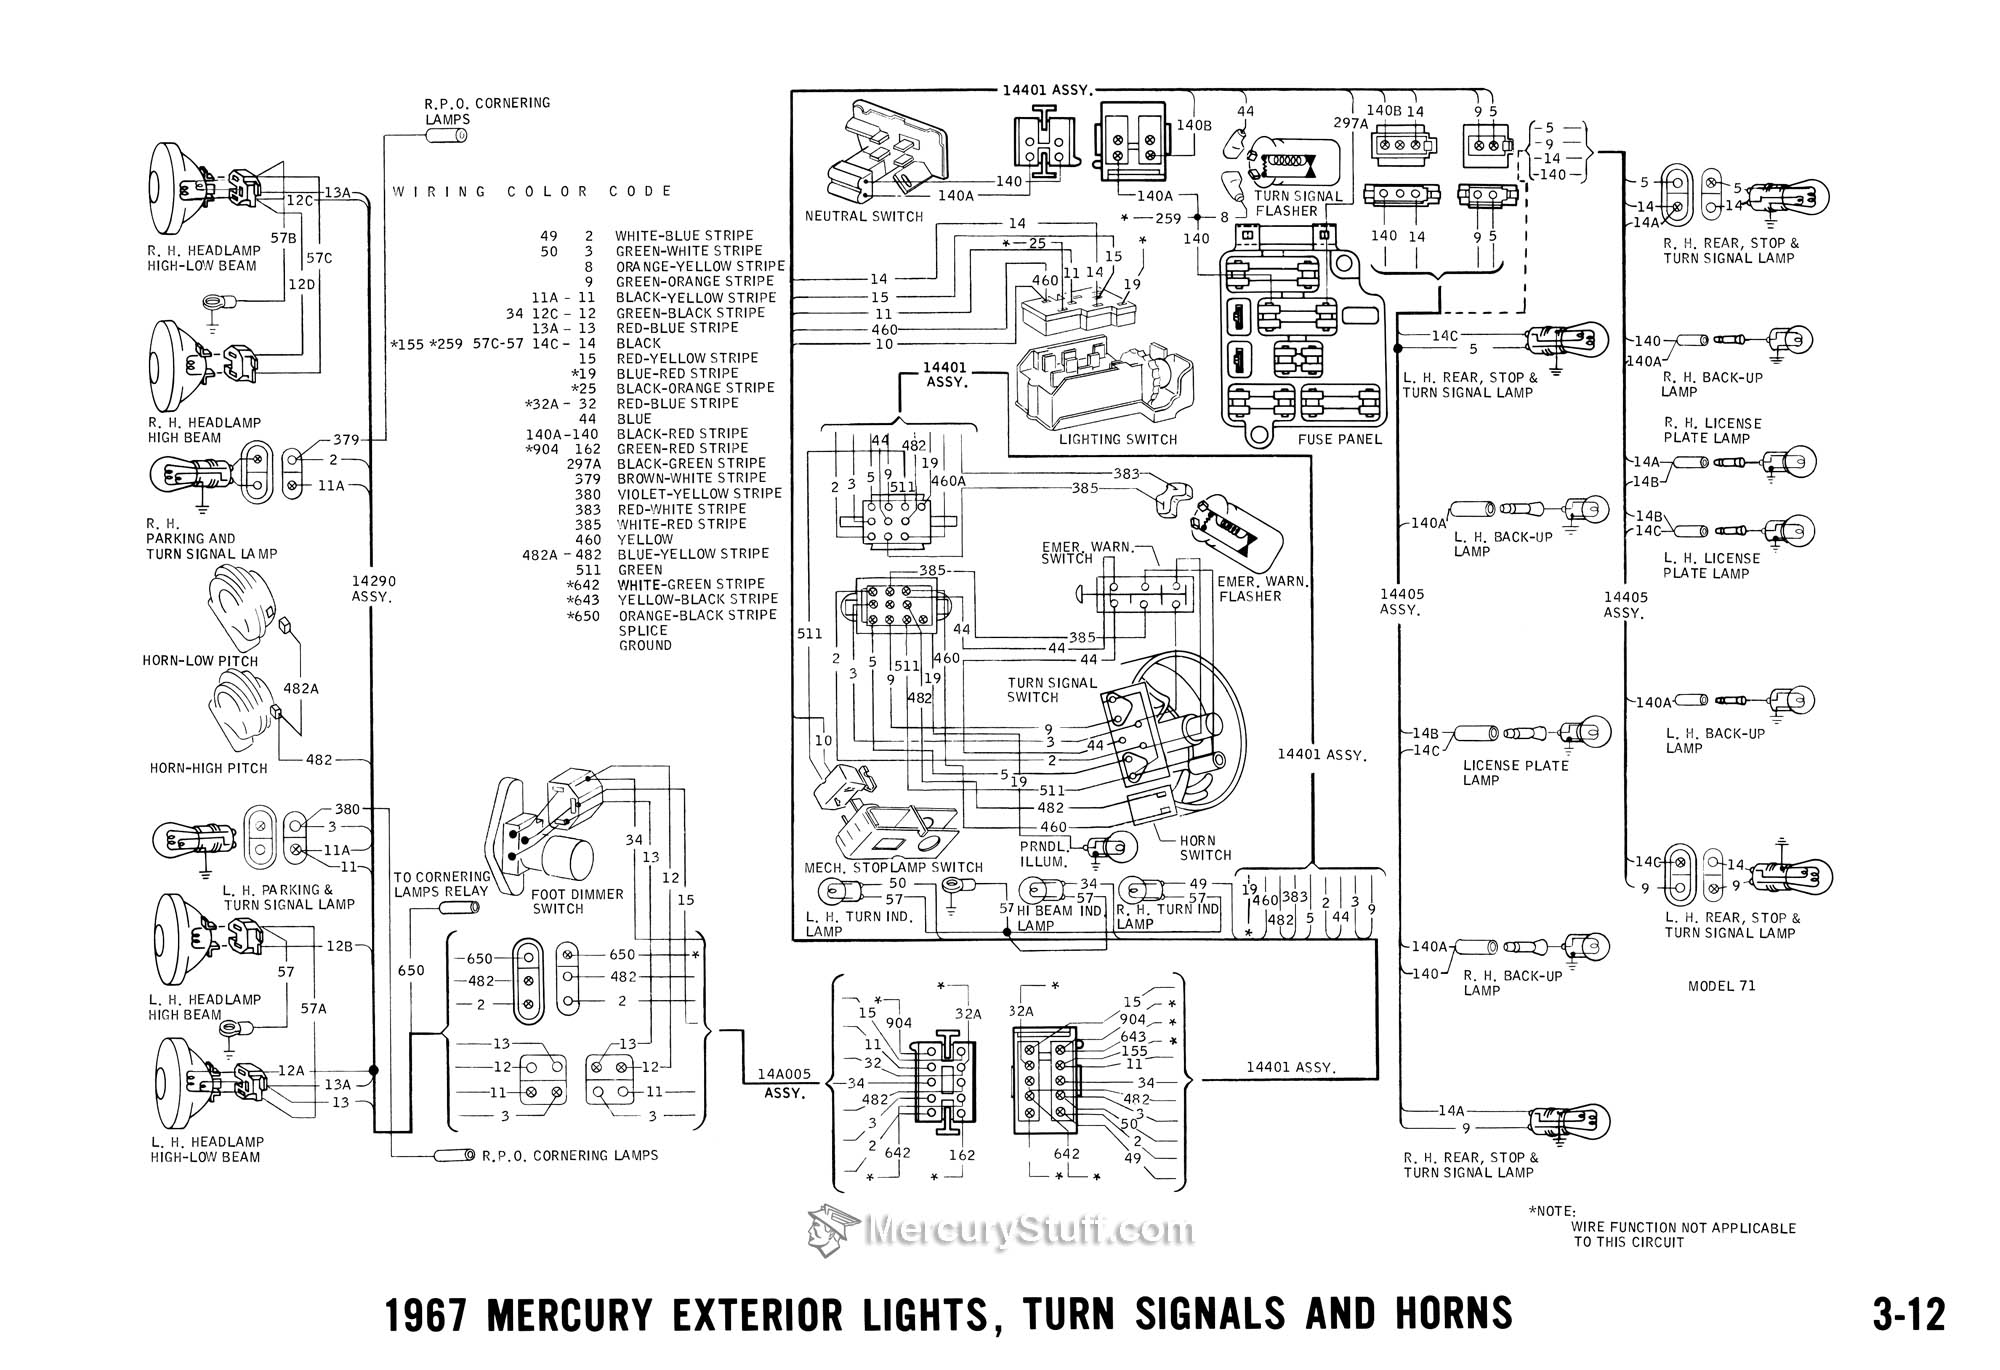 1966 mercury wiring diagram wiring diagram rh blaknwyt co 1967 cougar turn signal wiring diagram 1968 cougar wiring diagram